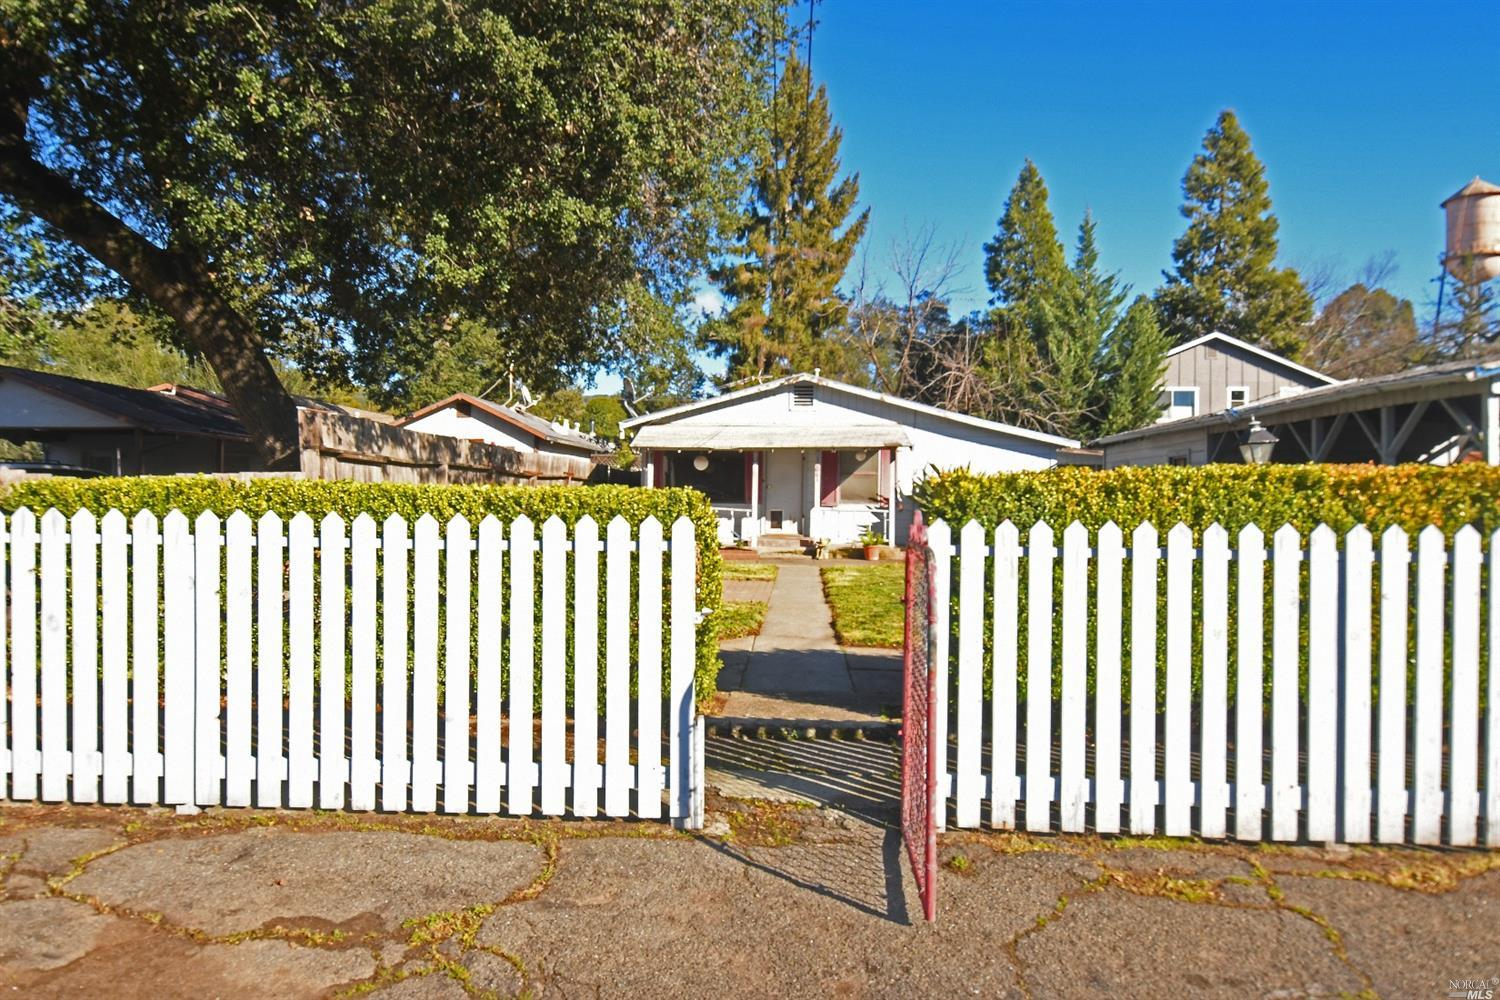 Sweet Boyes Hot Springs fixer with tons of potential! Covered carport, shed, workshop all set back off of the street allowing for plenty of room for expansion. Claw foot tub, new water heater, laundry room detached.  Bring your contractor and vision for this darling bungalow. Enjoy a short stroll to the world famous Sonoma Mission Inn, local restaurants, coffee shop and grocery stores.   Yours to love.....